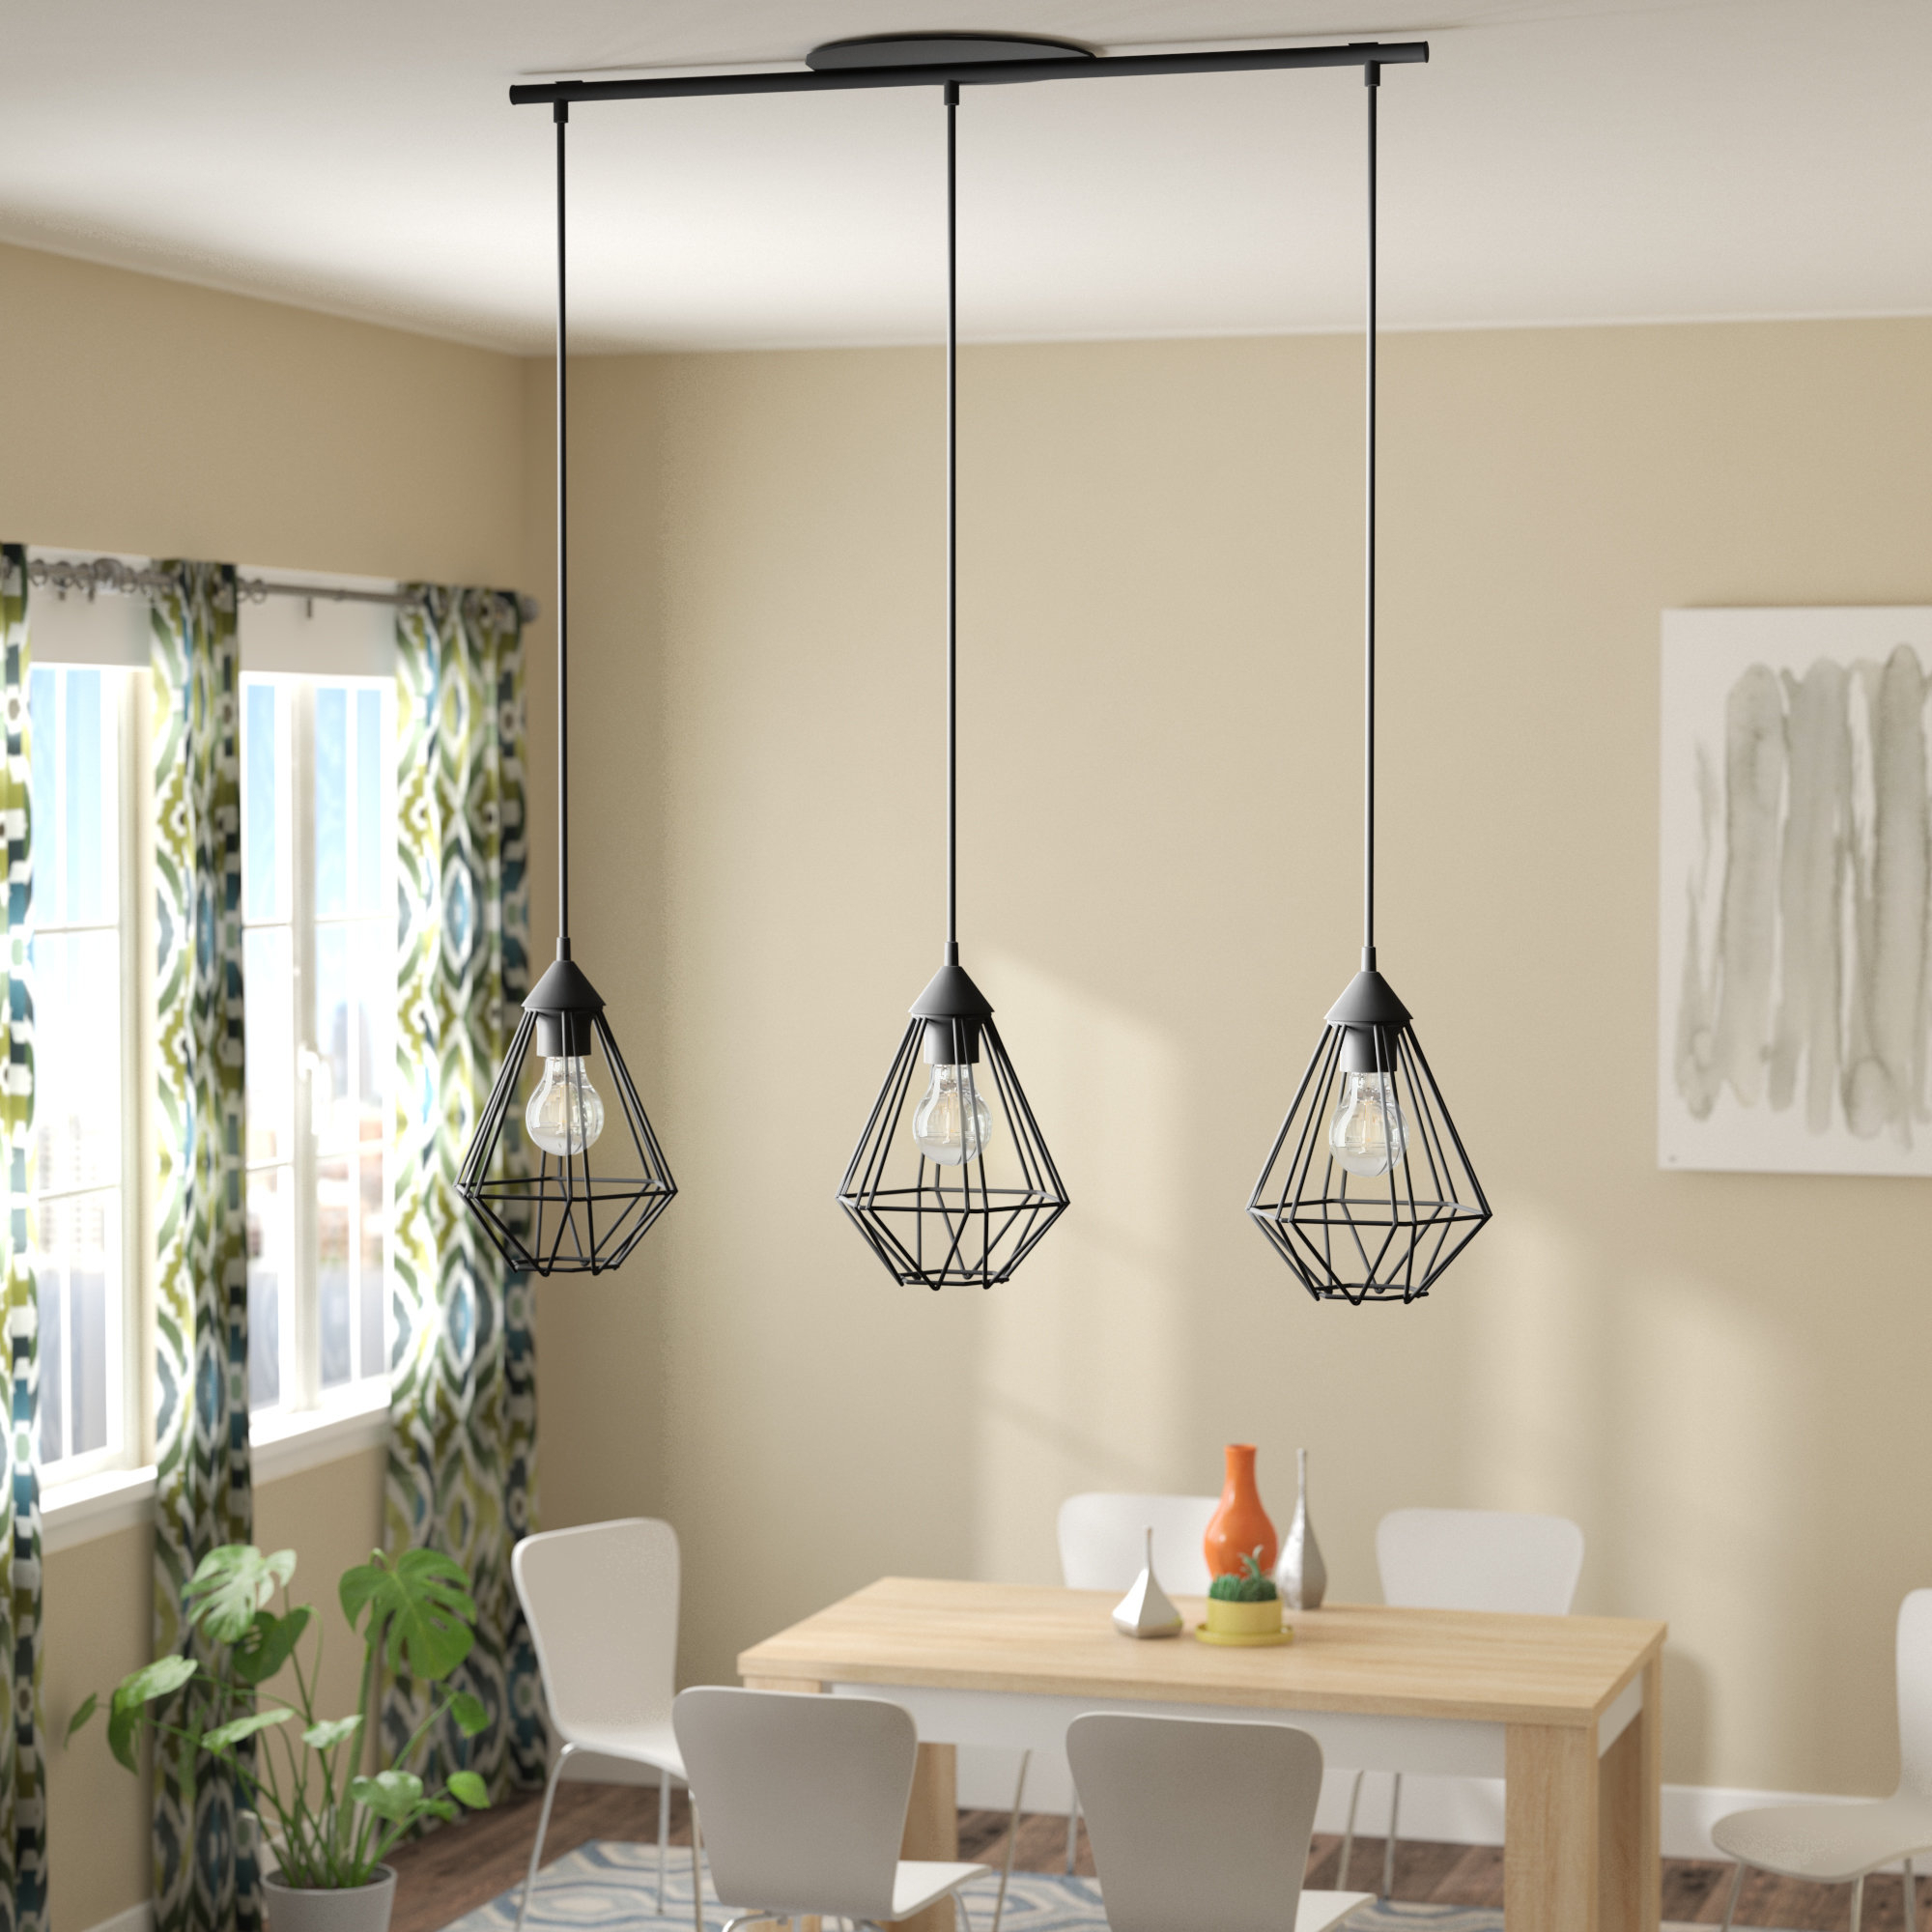 Black Kitchen Island Pendant Lighting You'll Love In 2019 Throughout Schutt 4 Light Kitchen Island Pendants (View 3 of 30)